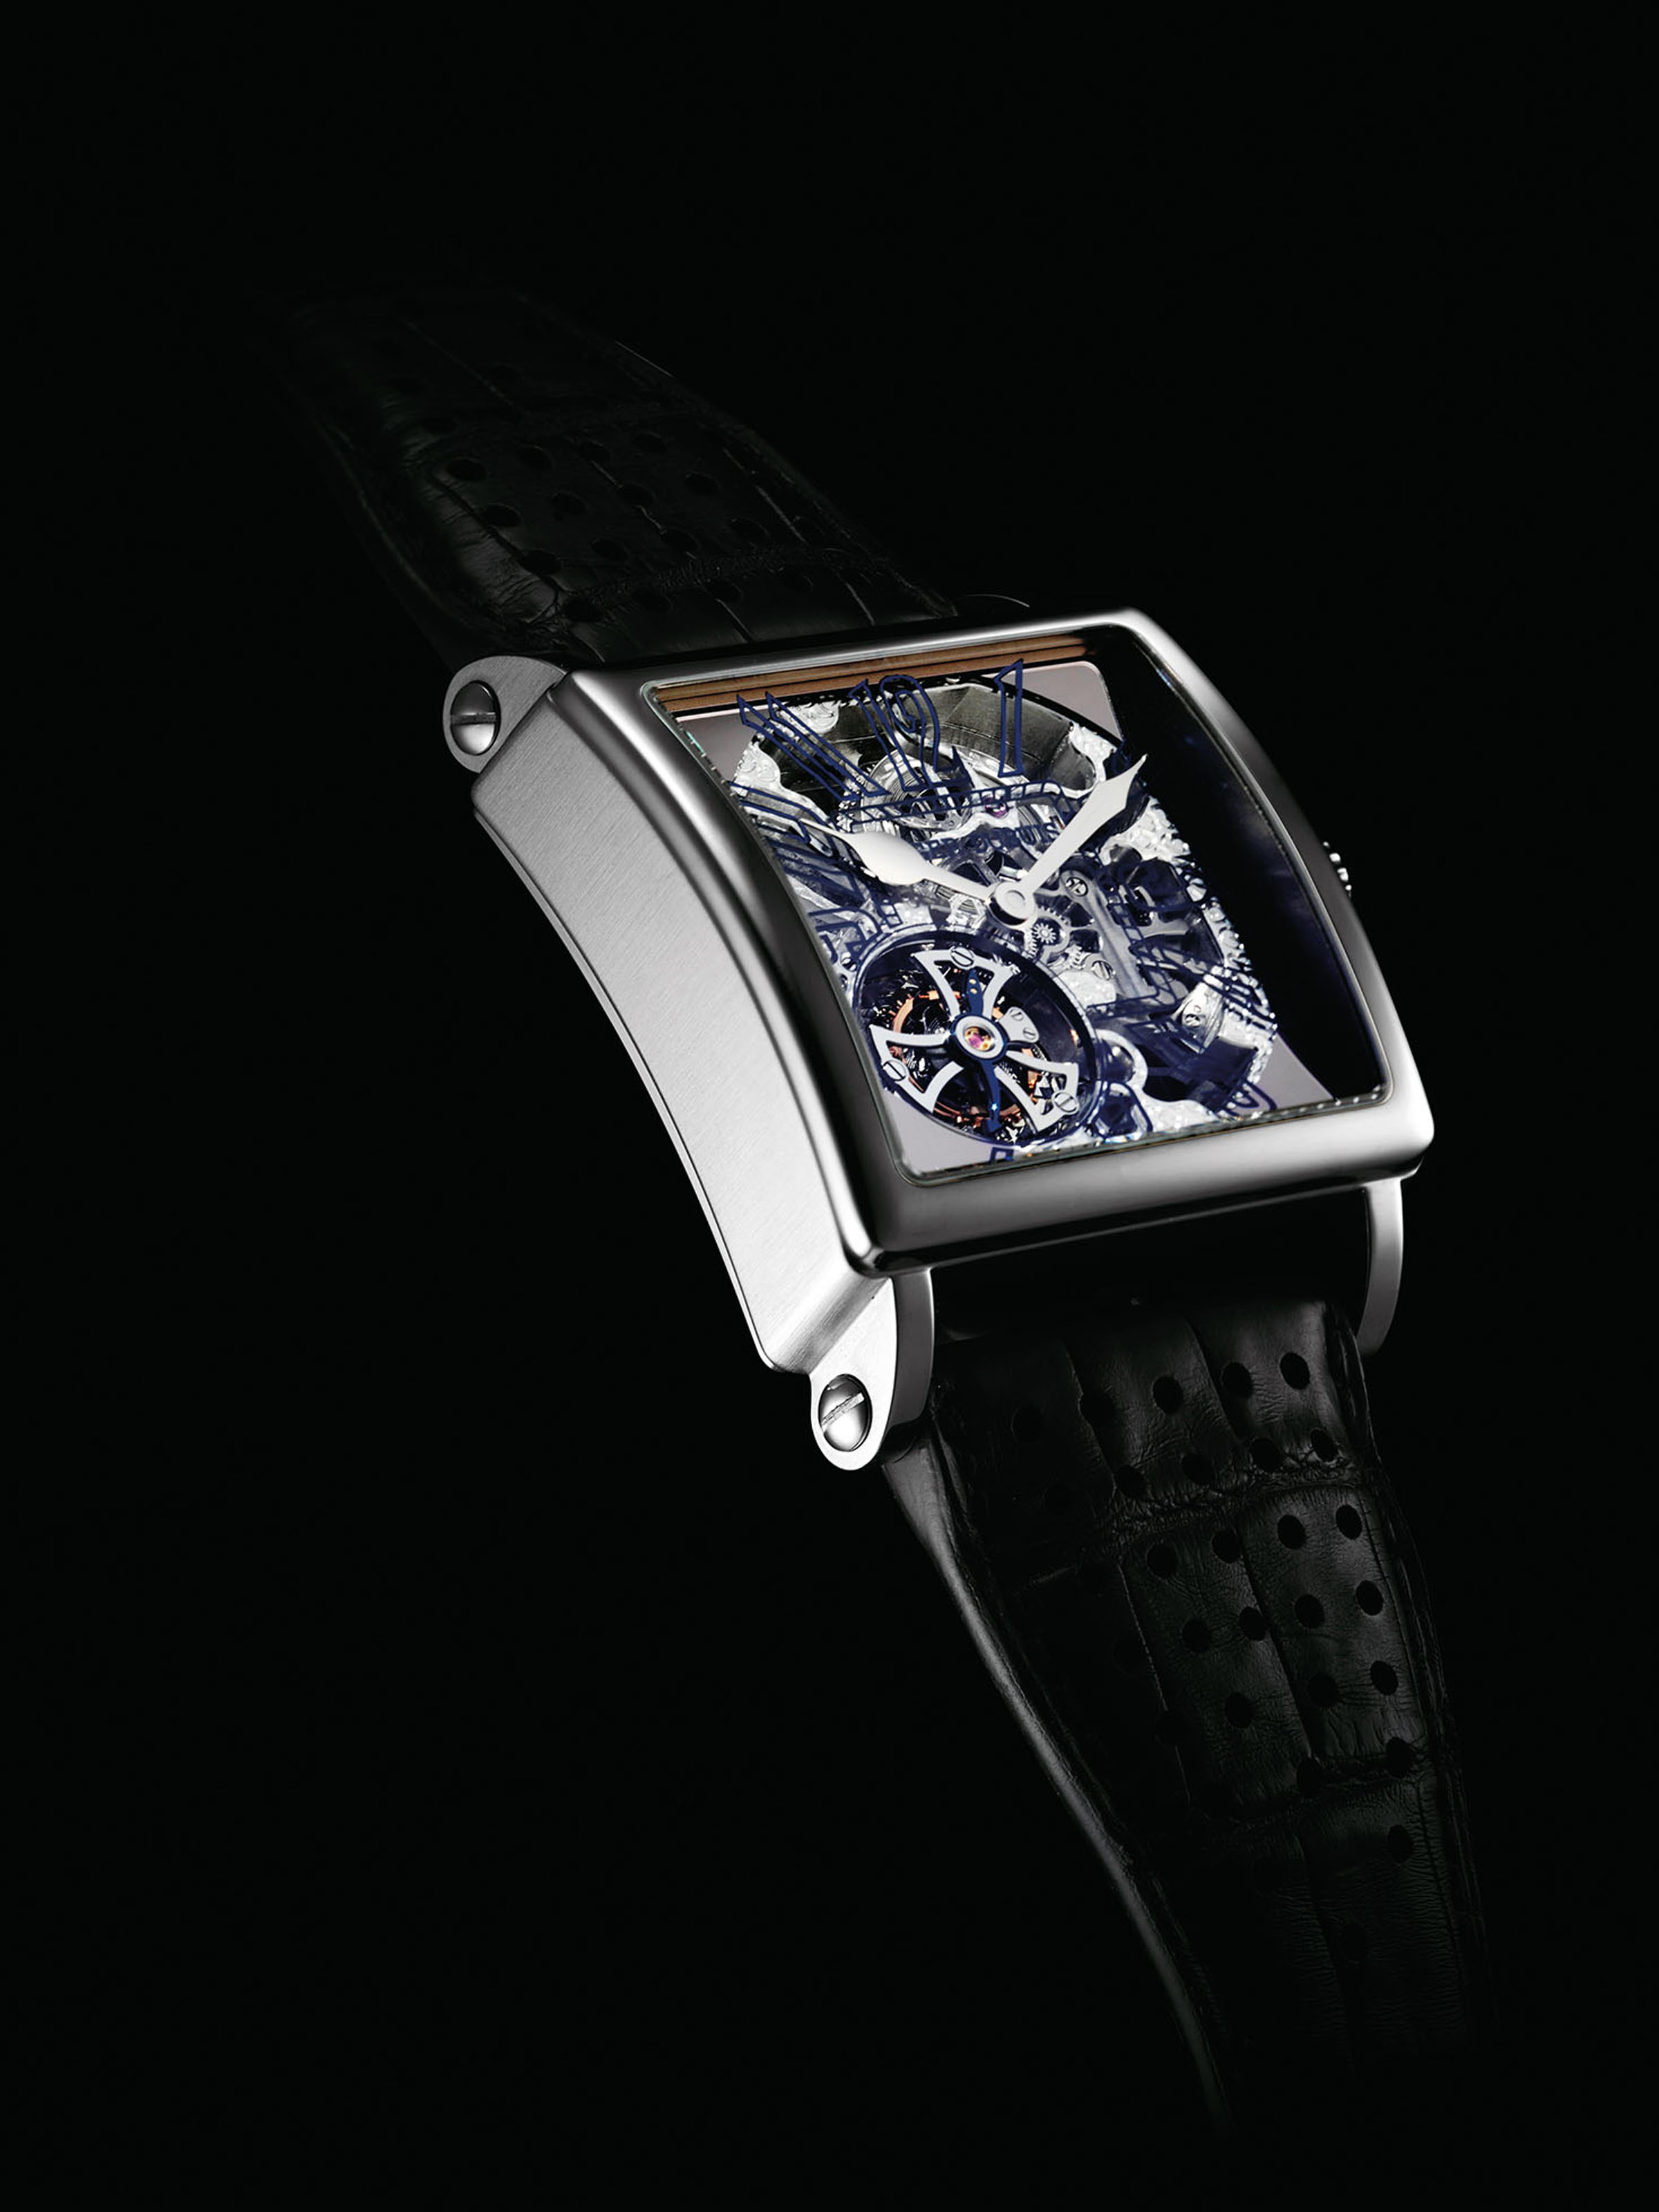 ROGER DUBUIS. A FINE, VERY RARE AND LARGE 18K WHITE GOLD LIMITED EDITION SKELETONISED SQUARE TOURBILLON WRISTWATCH